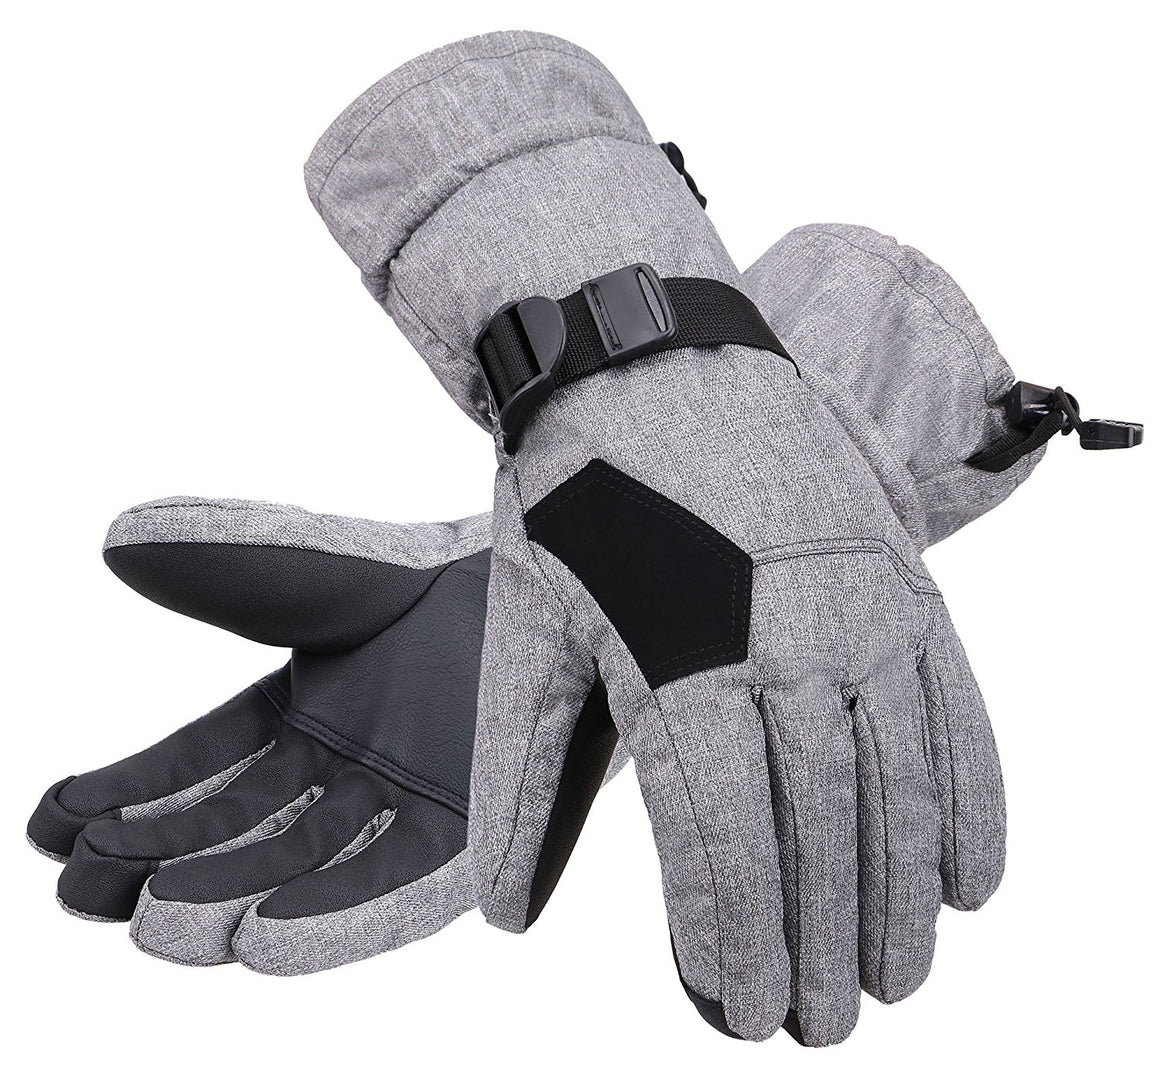 Andorra Men's Abstract Deluxe Touchscreen Sport Ski Gloves - Heather Grey 2